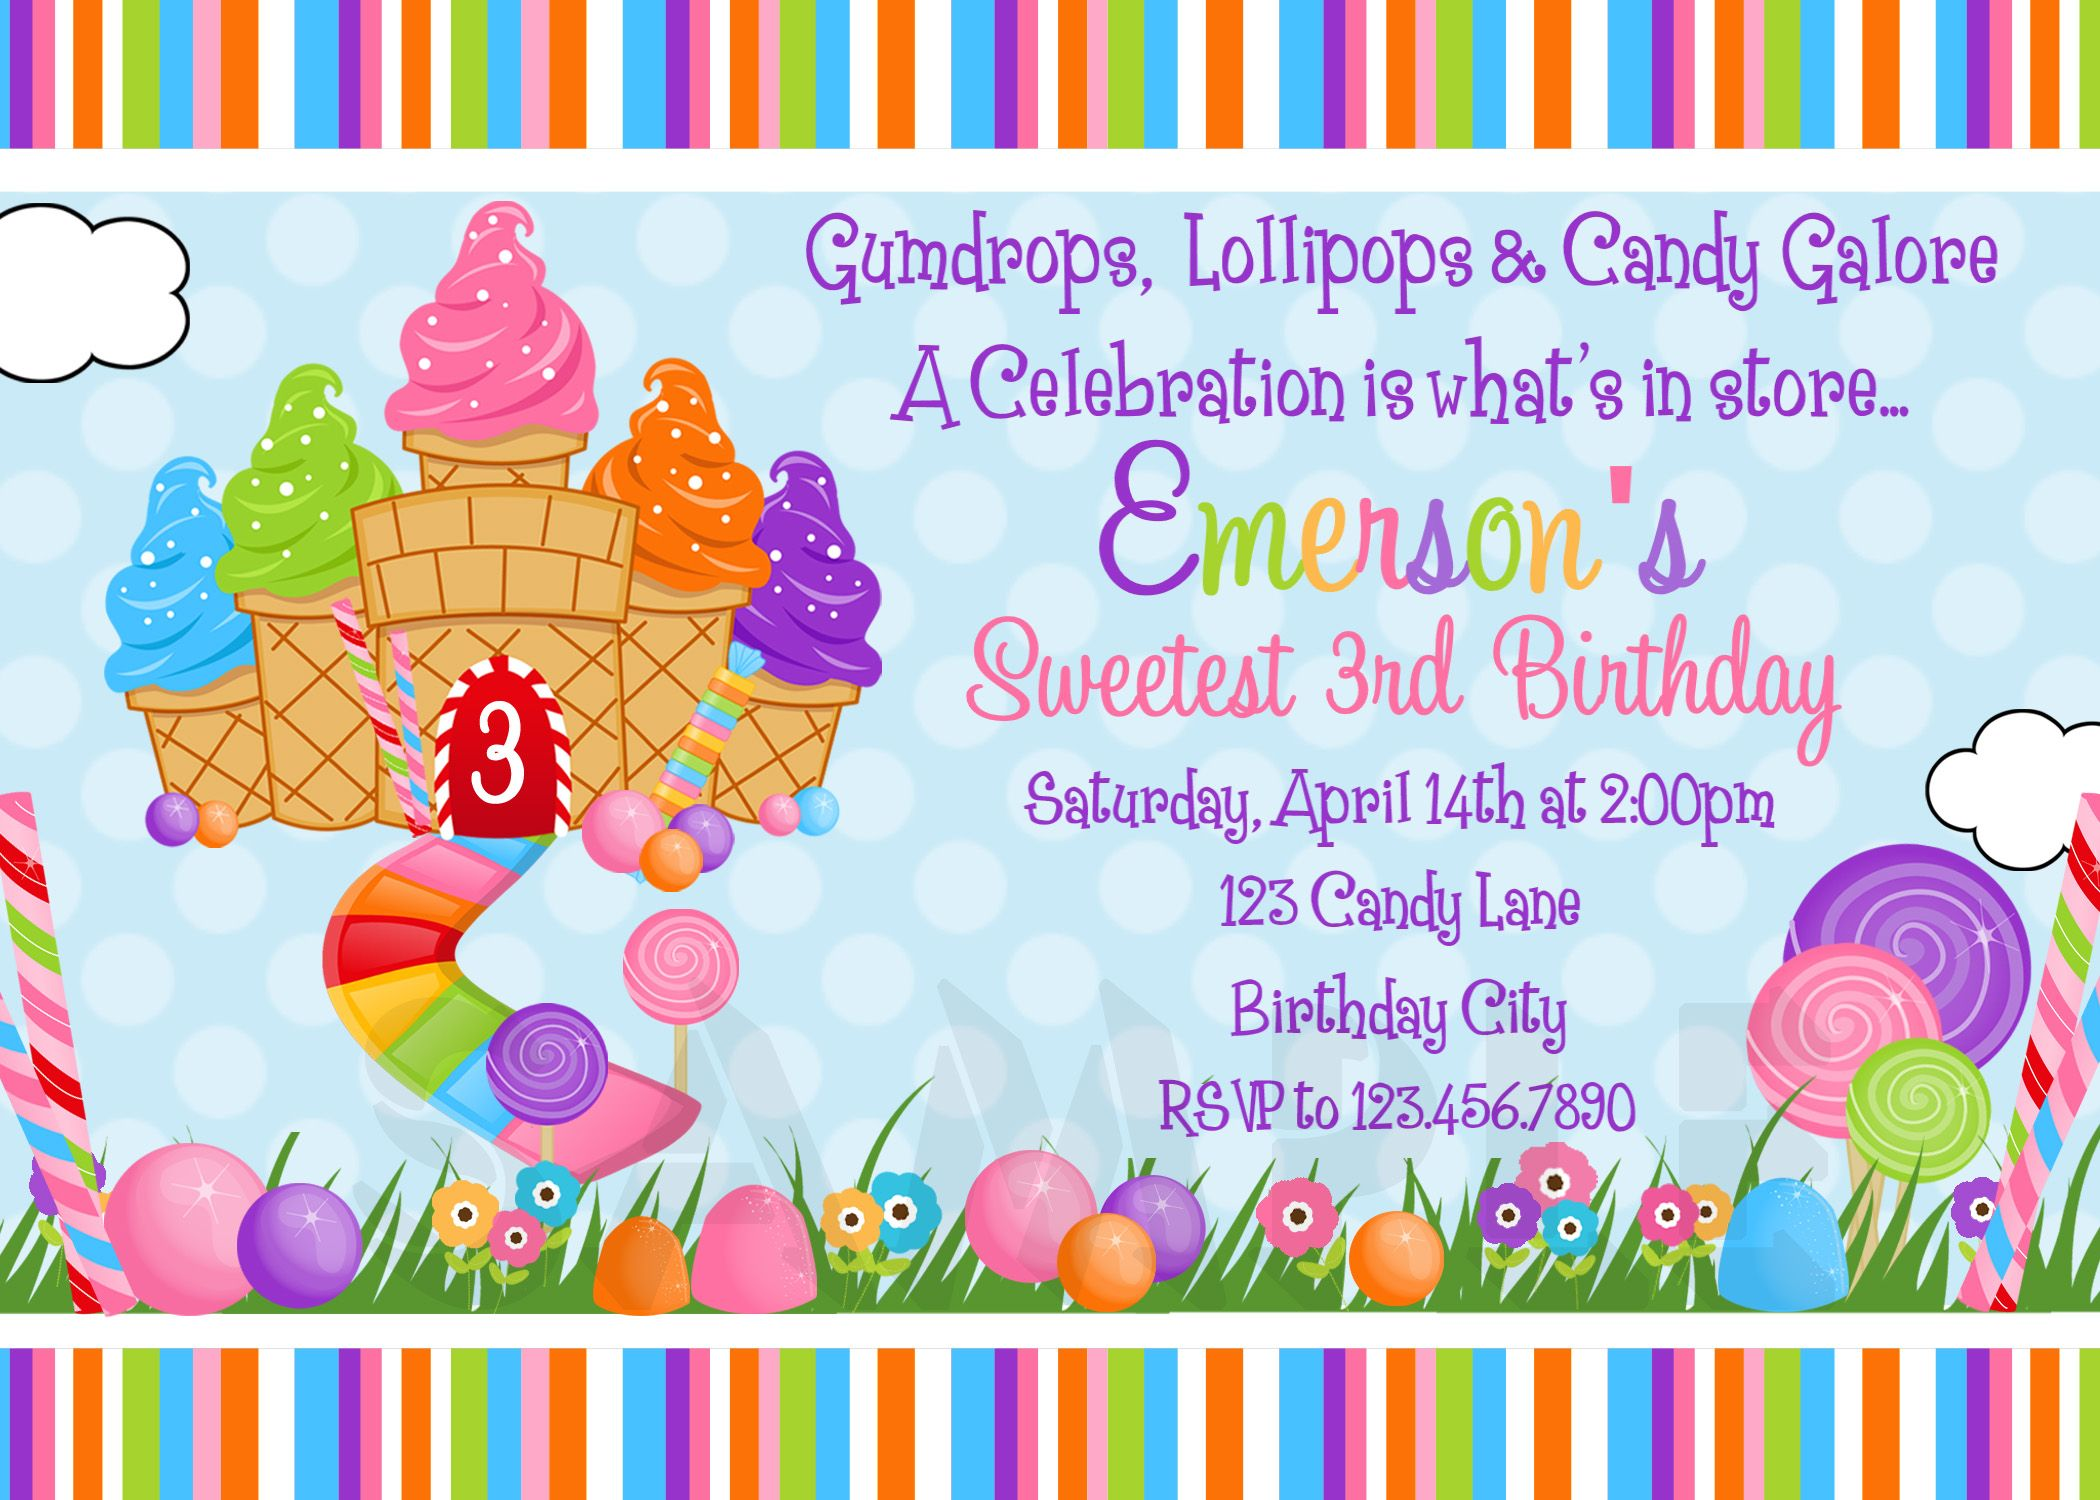 Candyland Party Printable Birthday Invitations Girls Candyland Party Candyland Invitations Candyland Birthday Candy Land Birthday Party